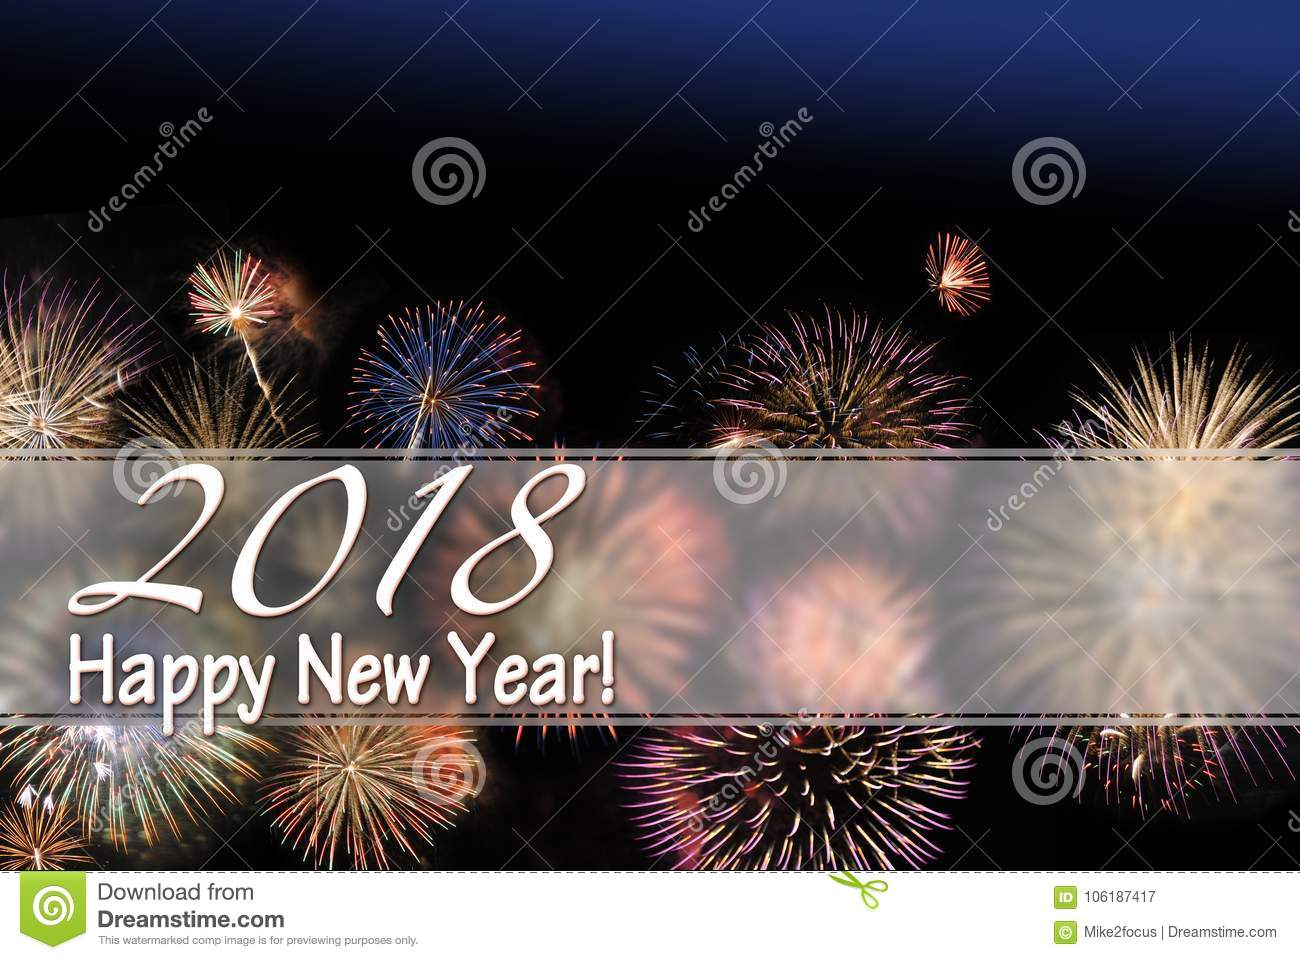 happy new year 2018 card and web banner with fireworks